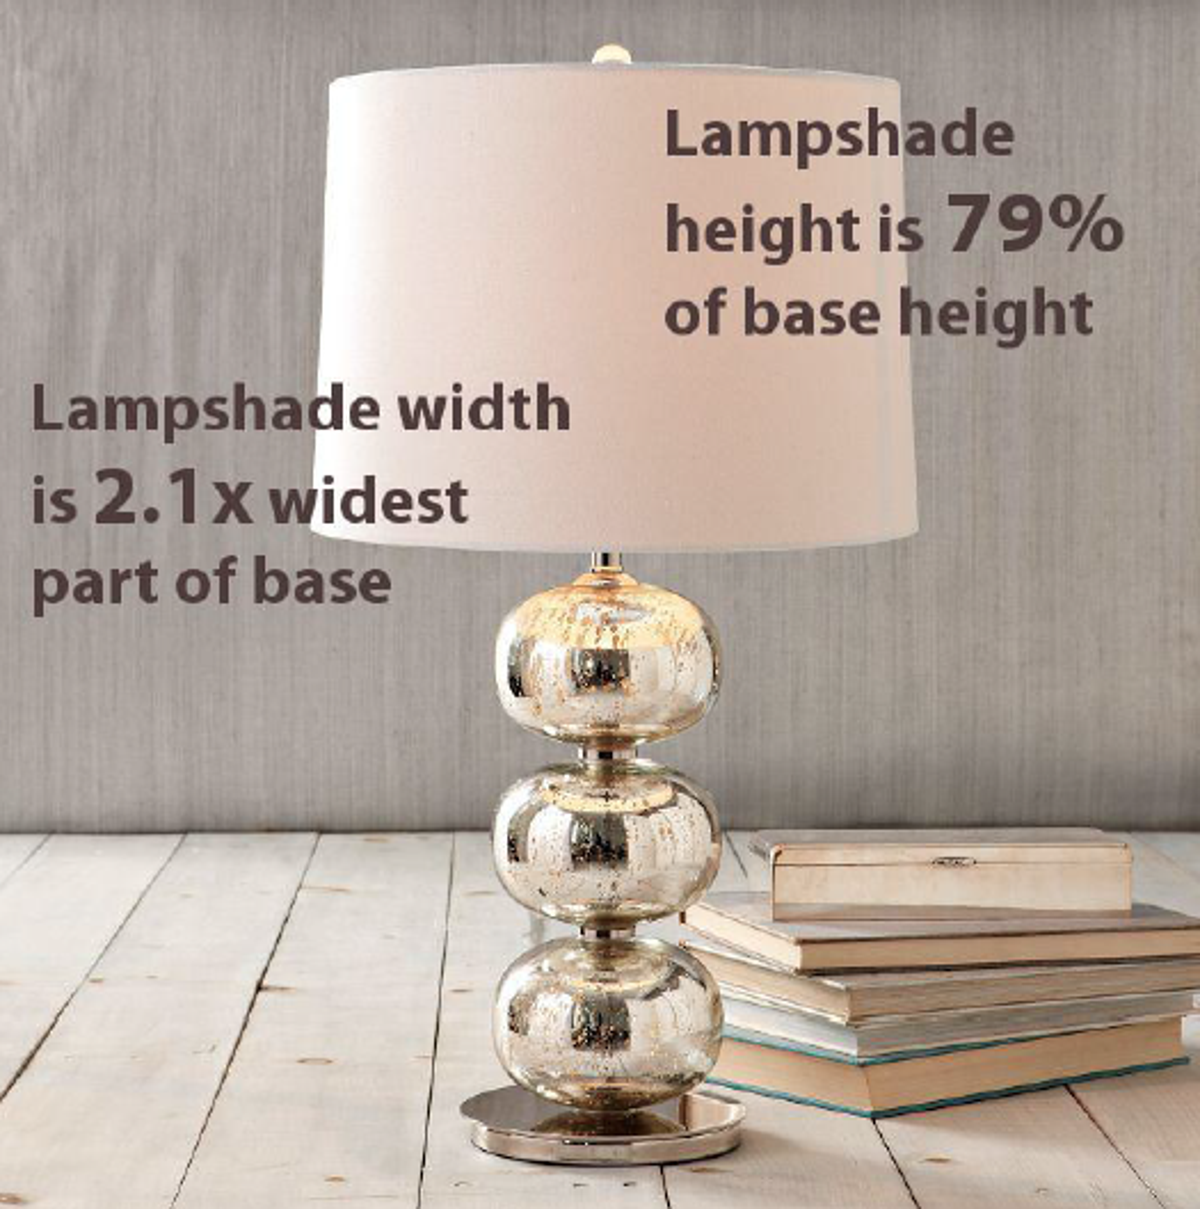 Table lamp height - For Table Lamps The Height Should Be Approximately 60 And 80 Of The Height Of The Lamp Base For Example A Table Lamp Base That S 20 Inches High Should